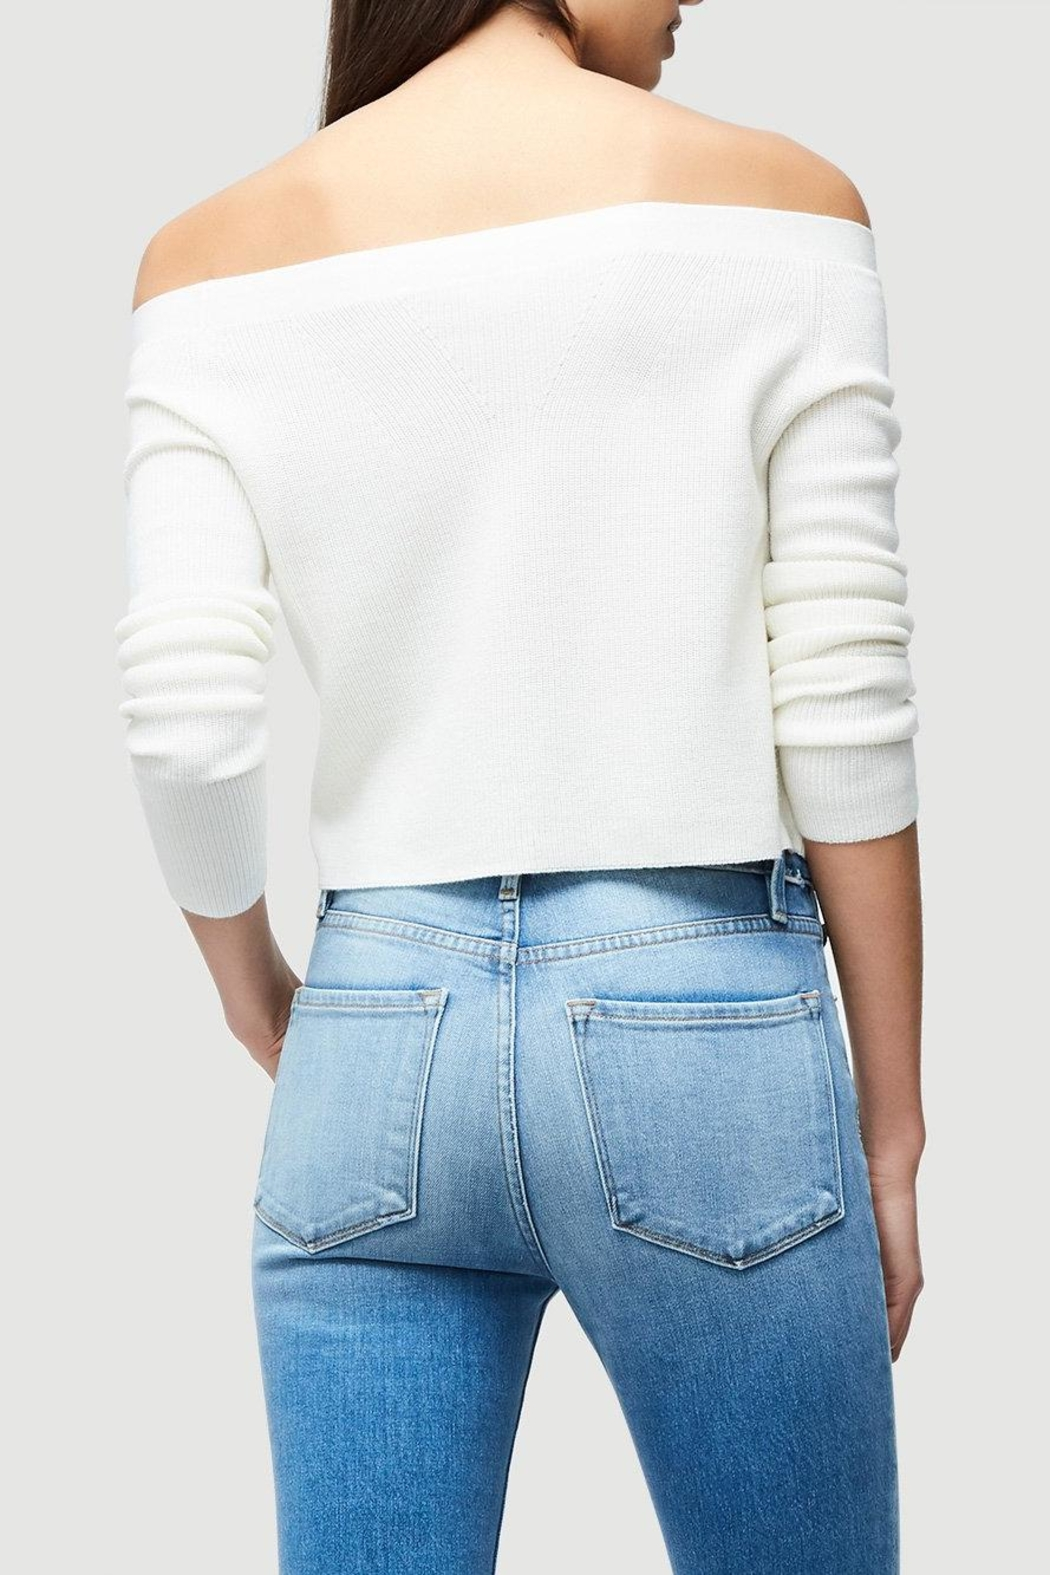 FRAME Denim Cropped Rib Sweater - Front Full Image